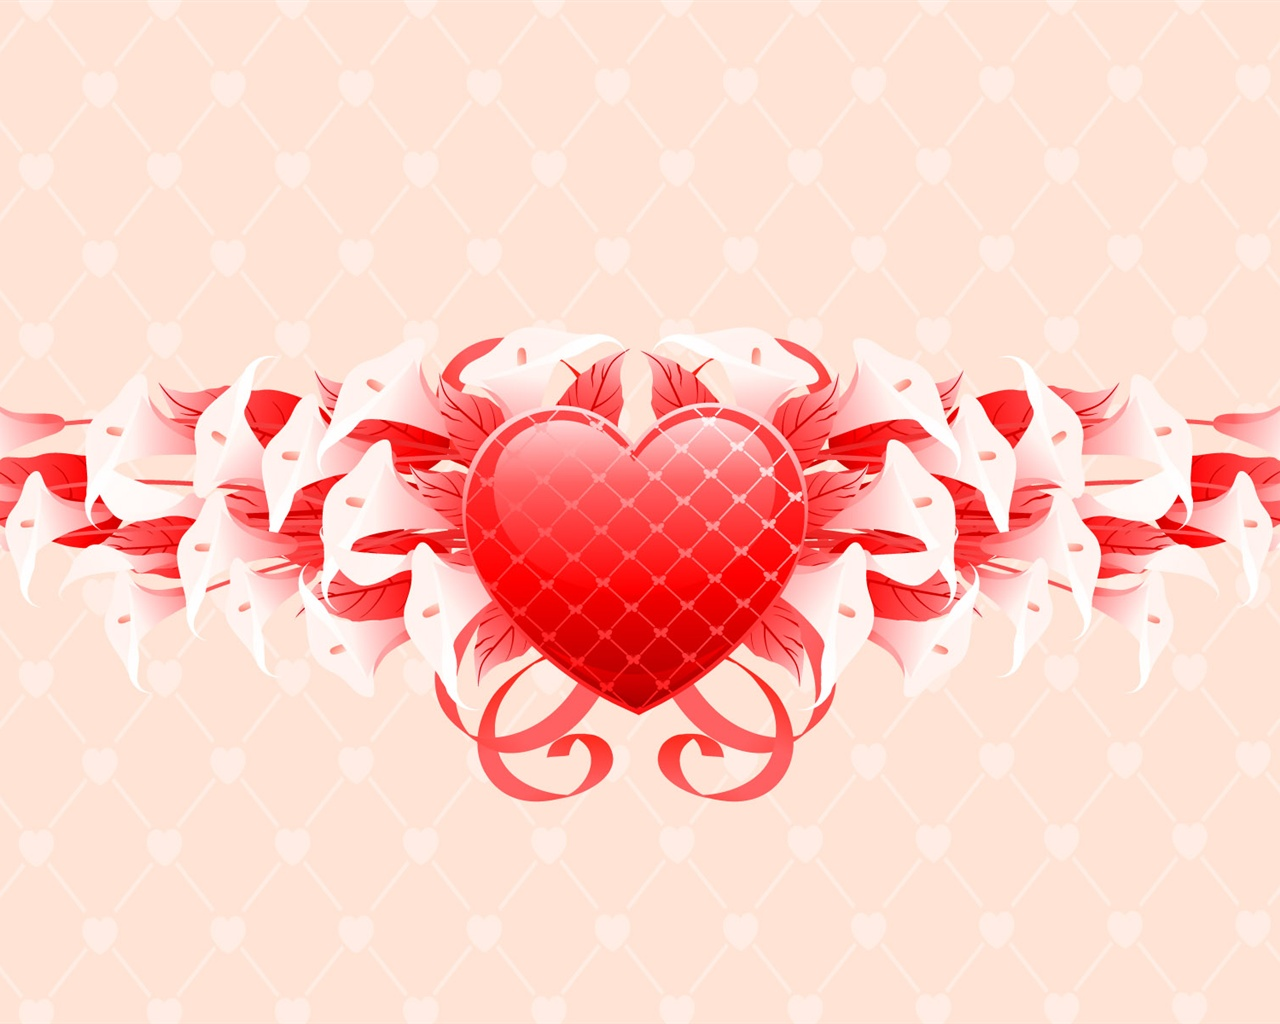 Saint Valentine's Day flowers gifts wallpaper - 1280x1024